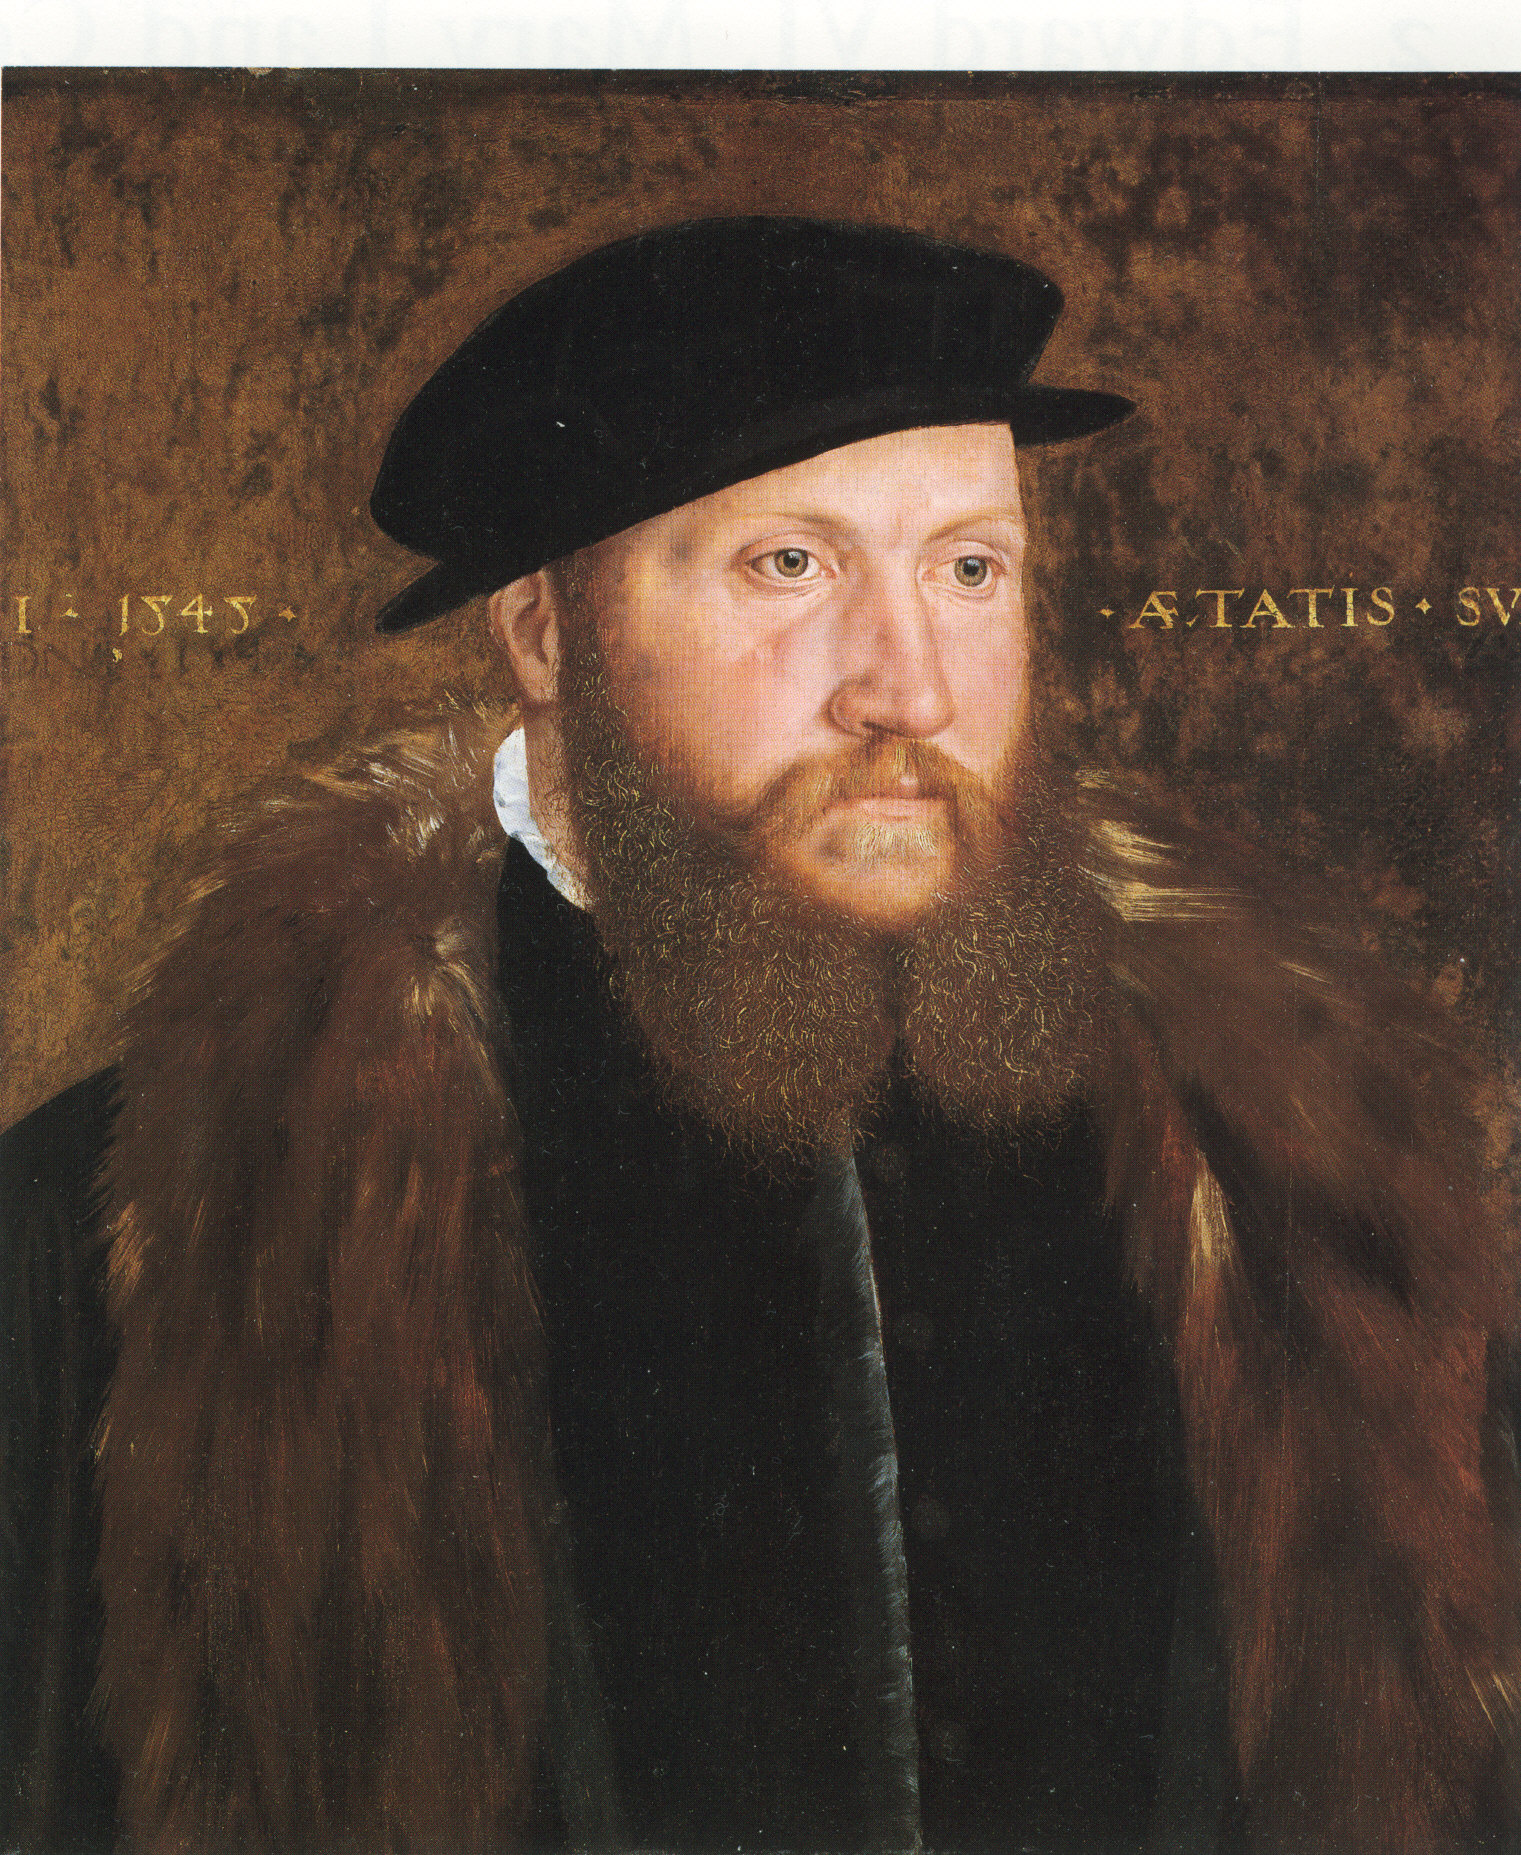 John Bettes, An Unknown Man in a Black Cap, 1545